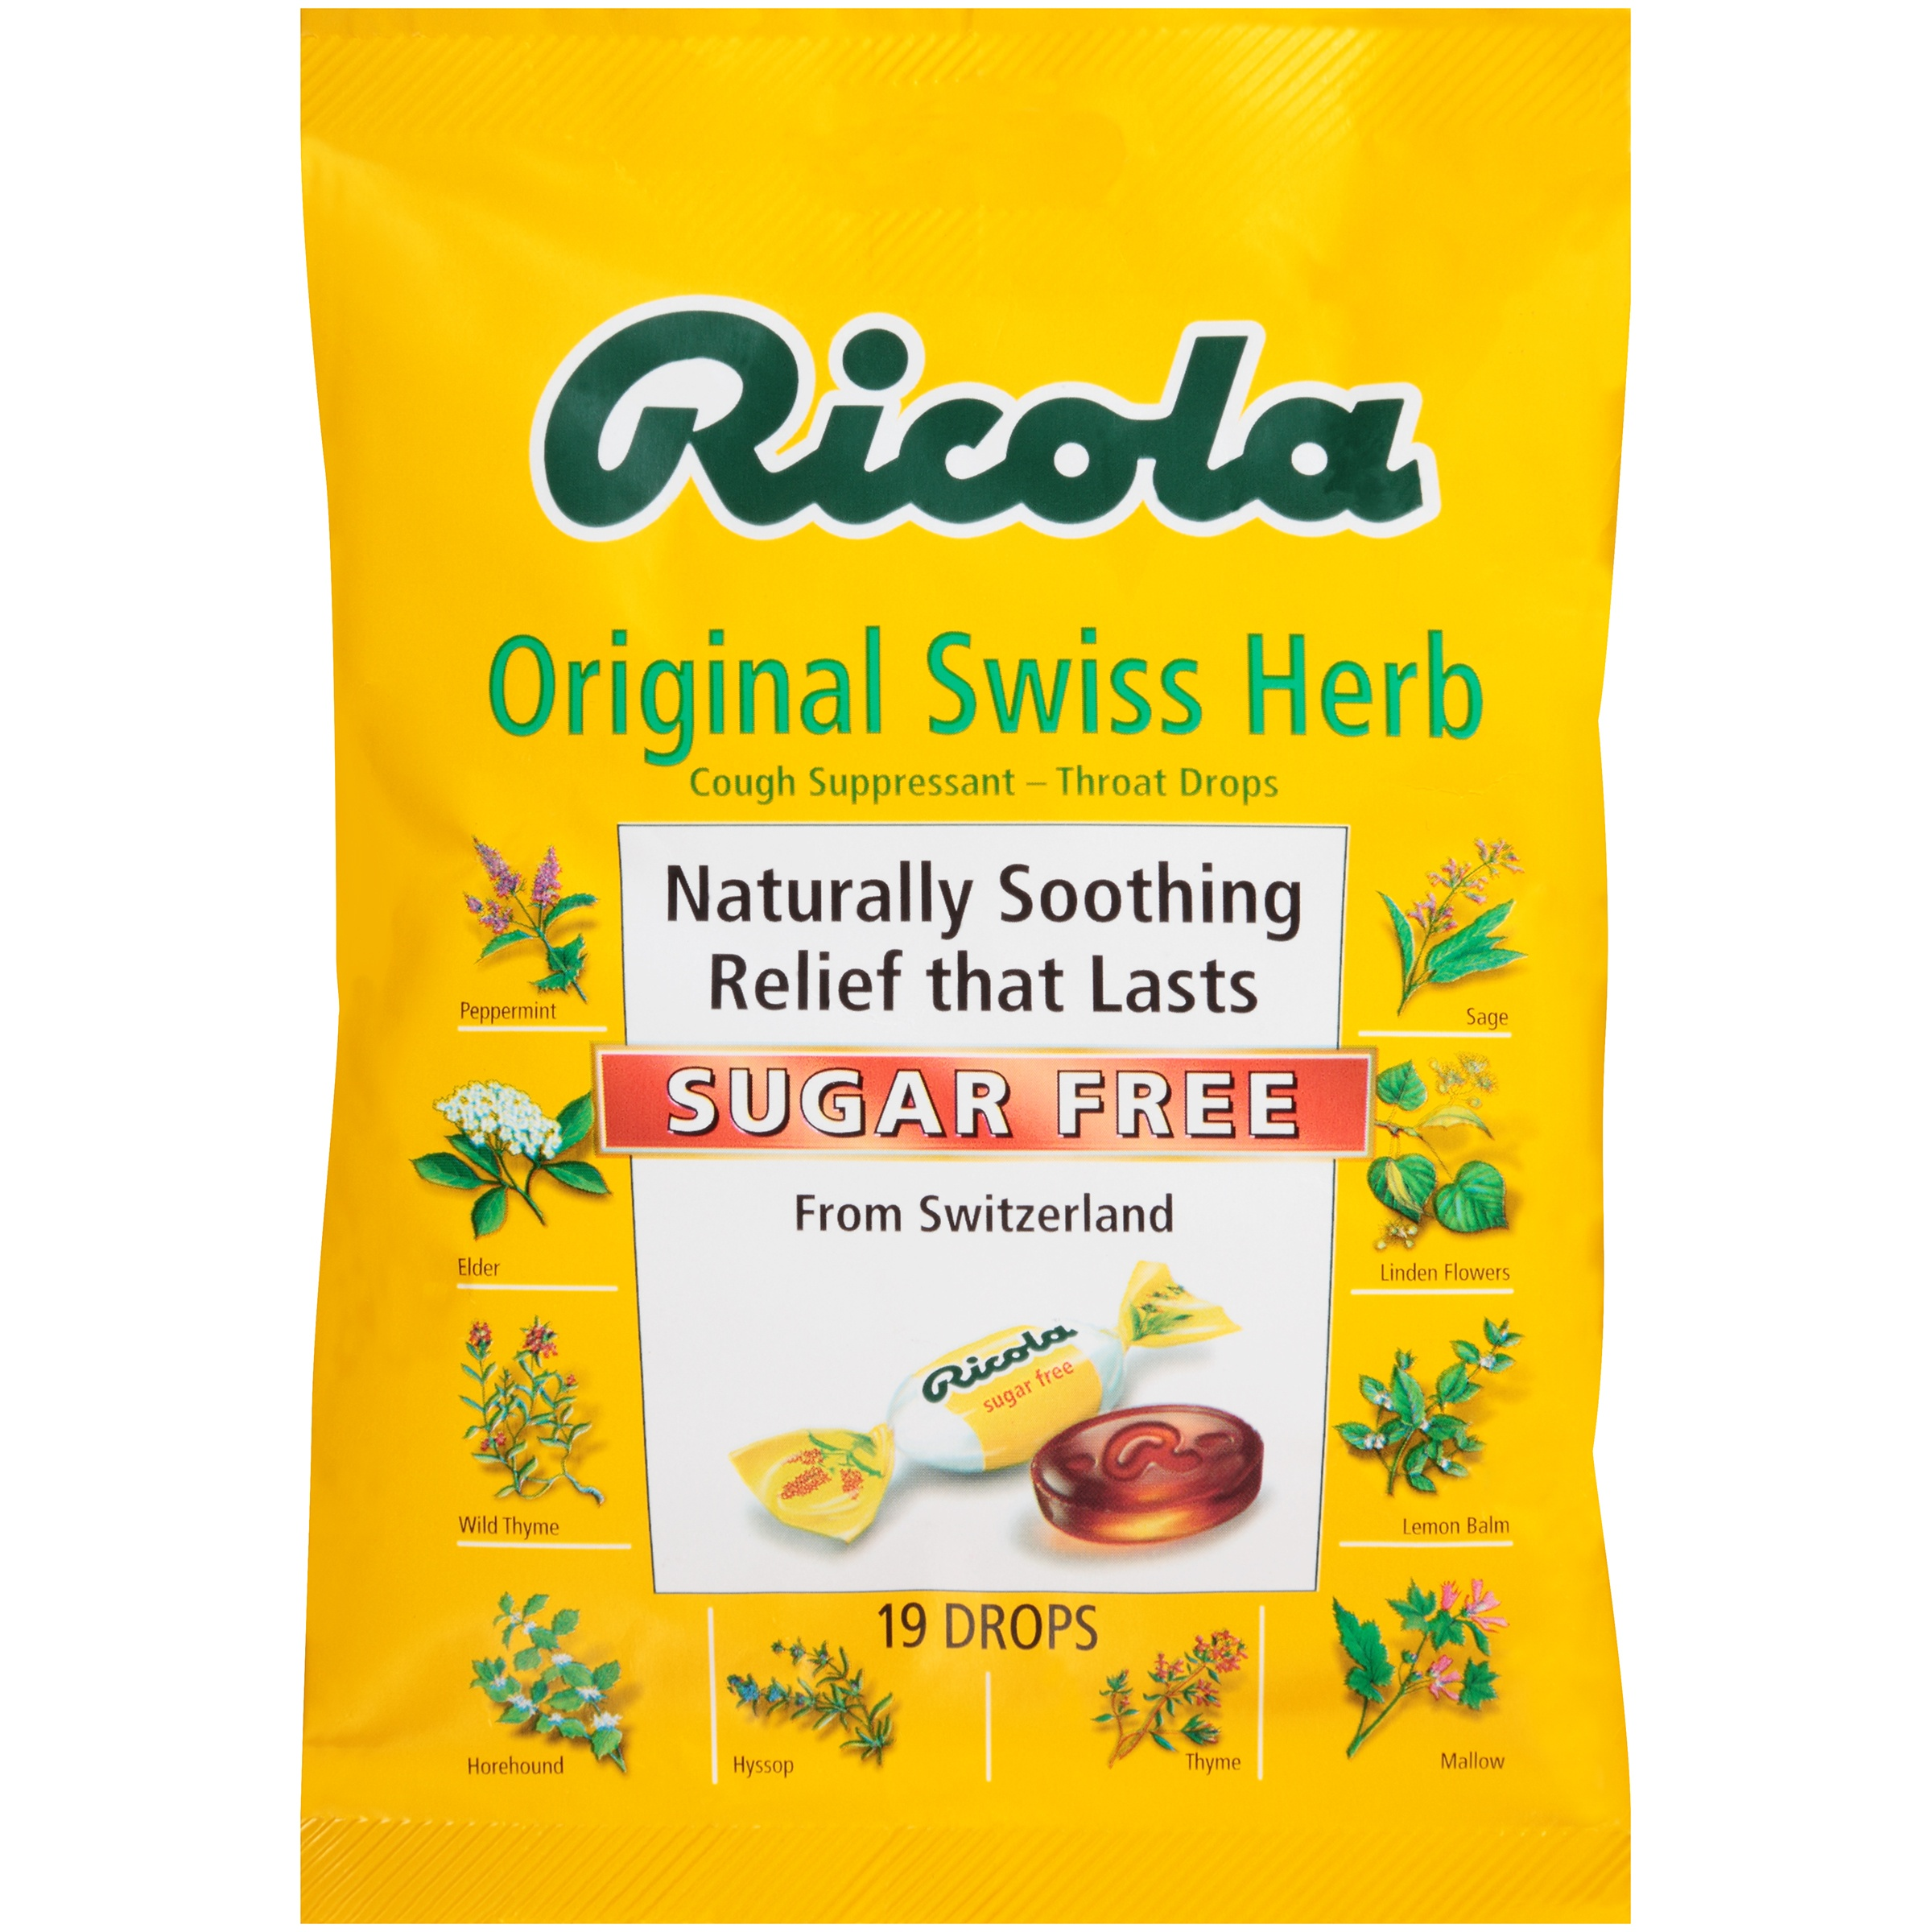 Ricola Sugar Free Original Swiss Herb Cough Suppressant Throat Drops 19 ct Bag